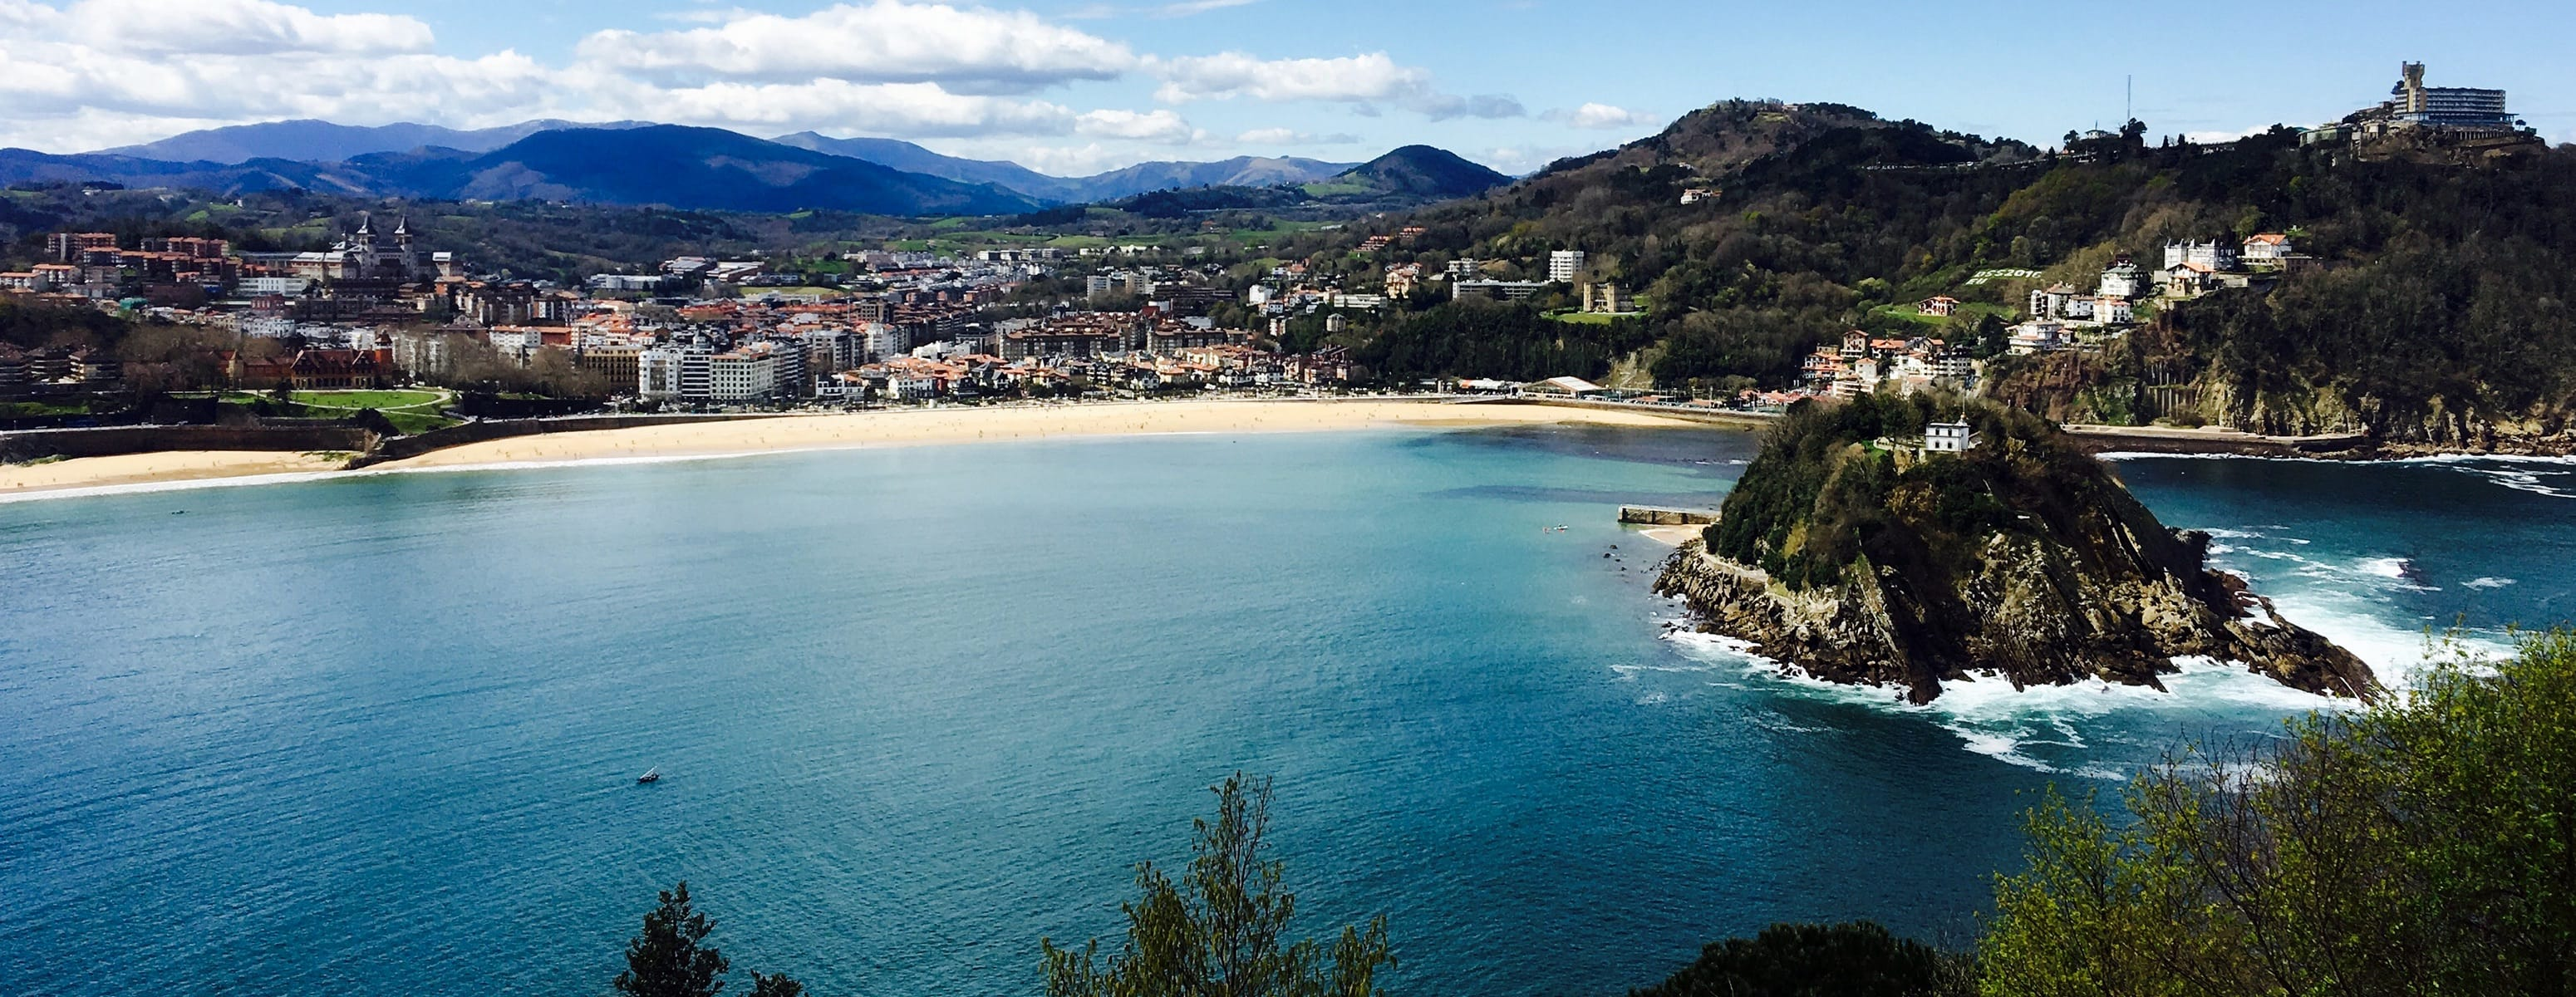 Vacation rentals in Donostia-San Sebastian